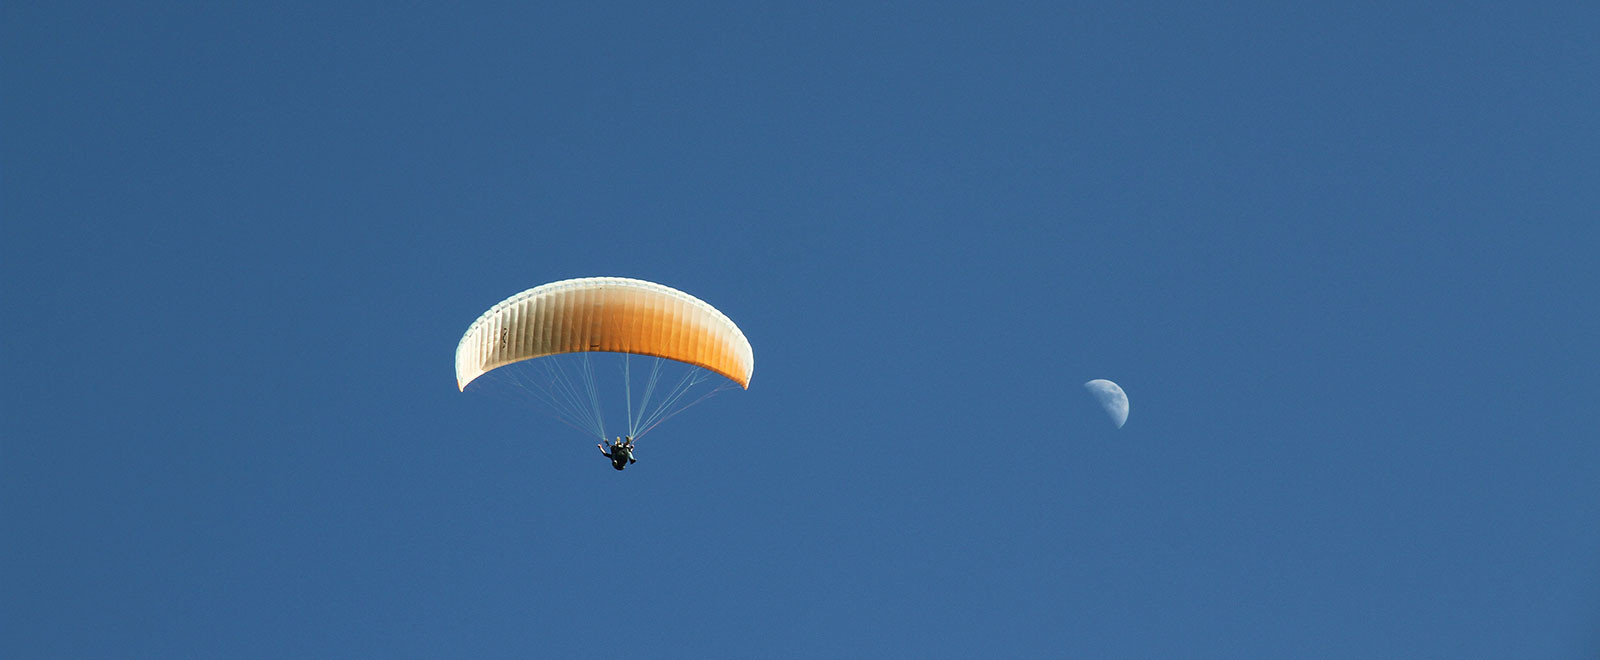 tandem paragliding with blue sky and